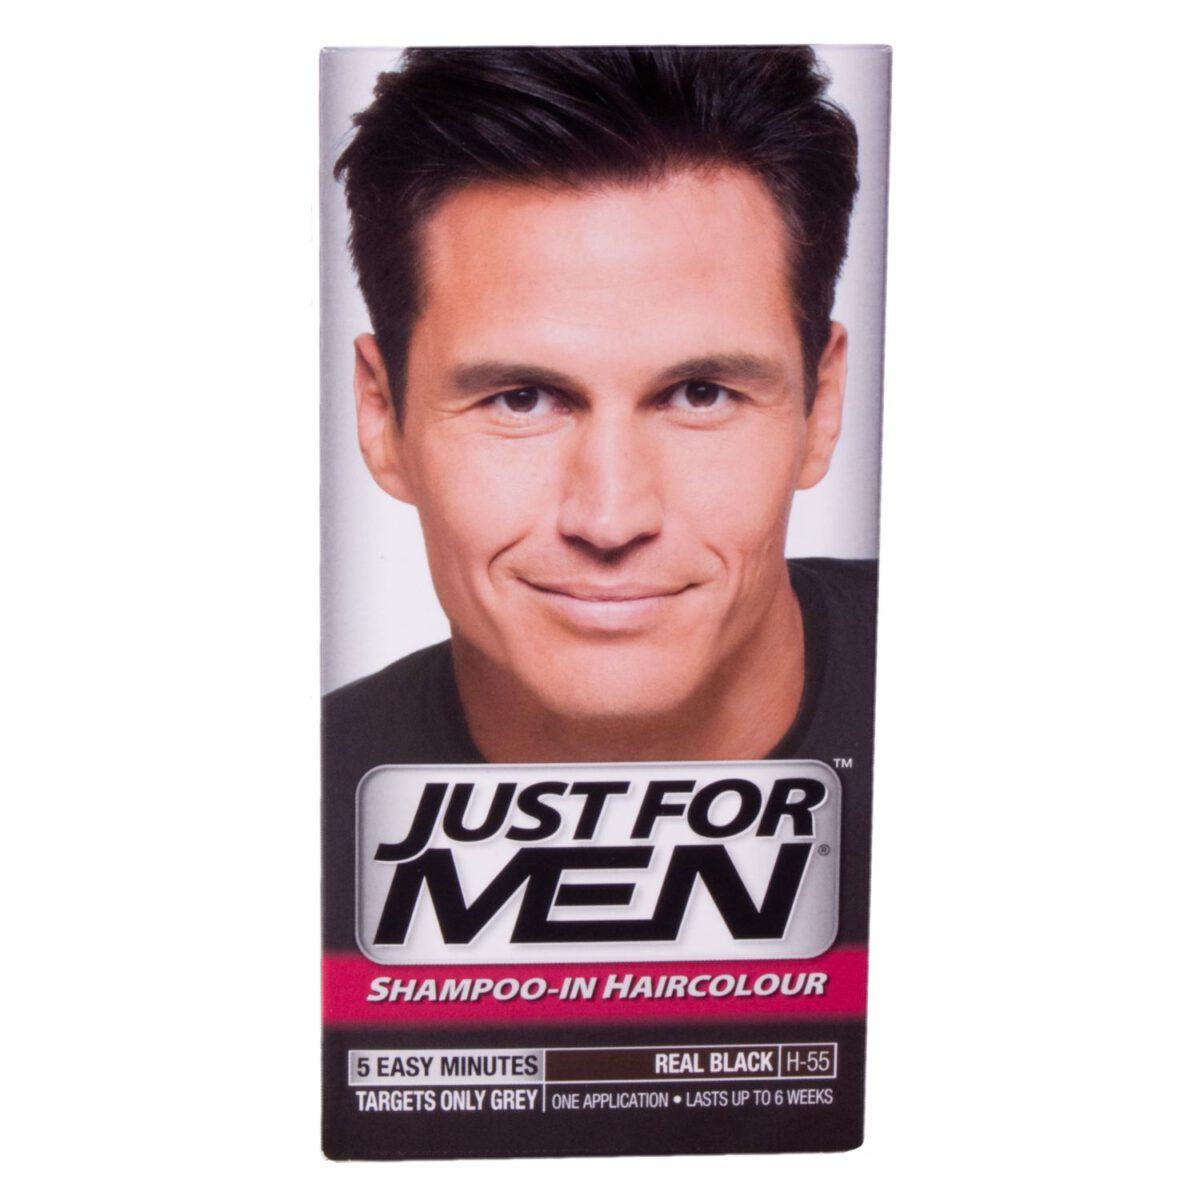 Just For Men Shampoo In Hair Colour - Real Black H55-0